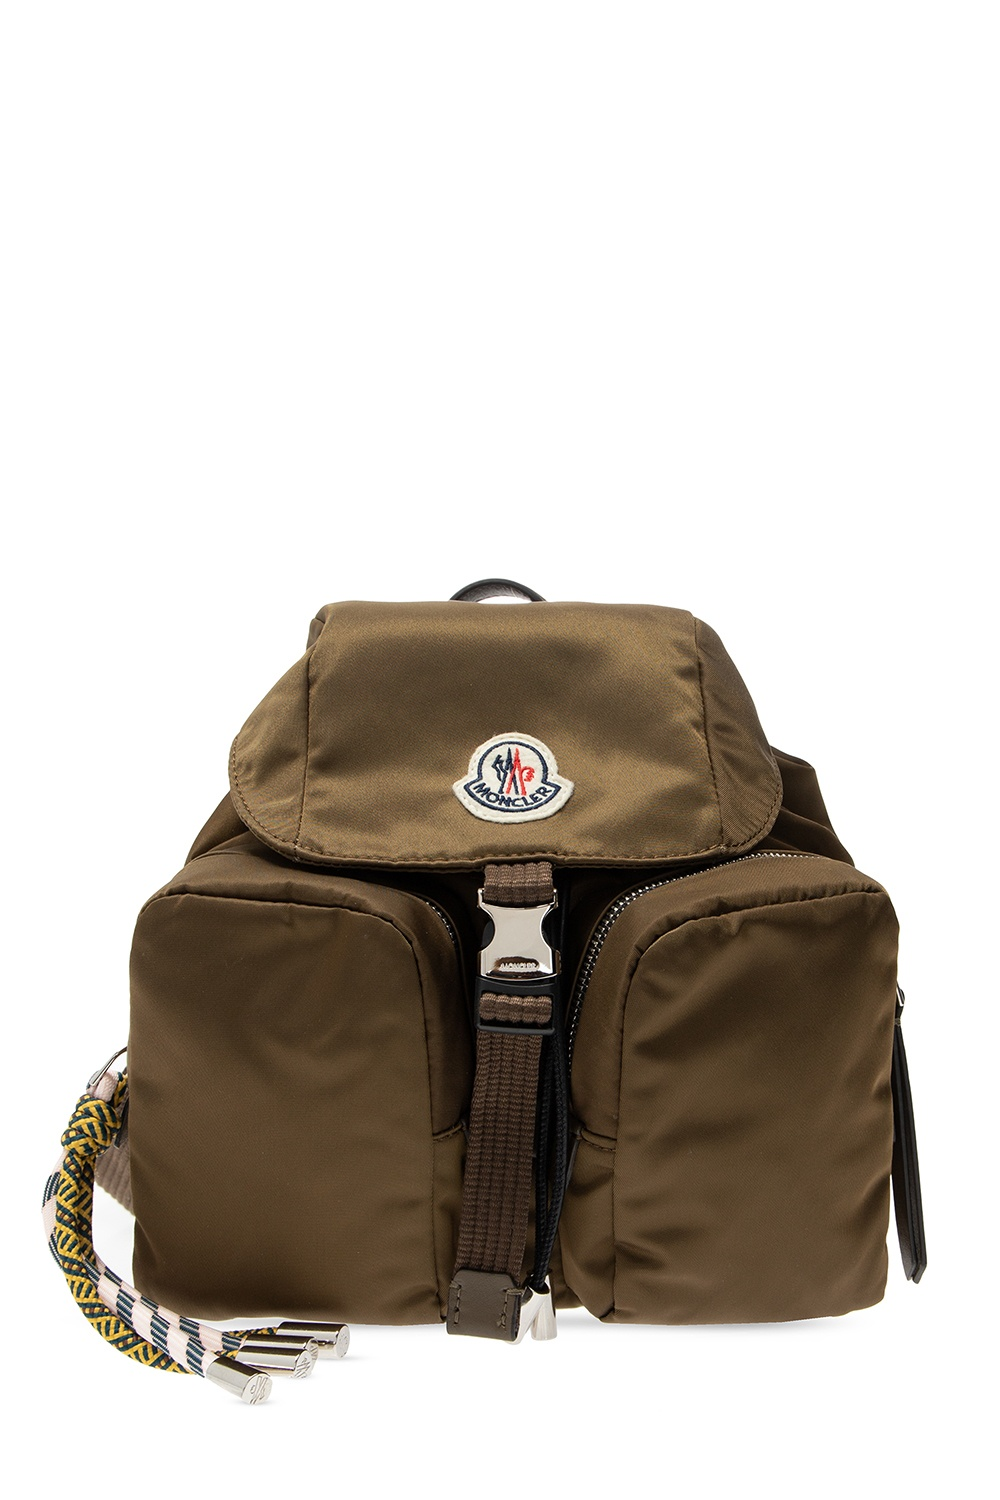 Moncler 'O' 'Dauphine' backpack